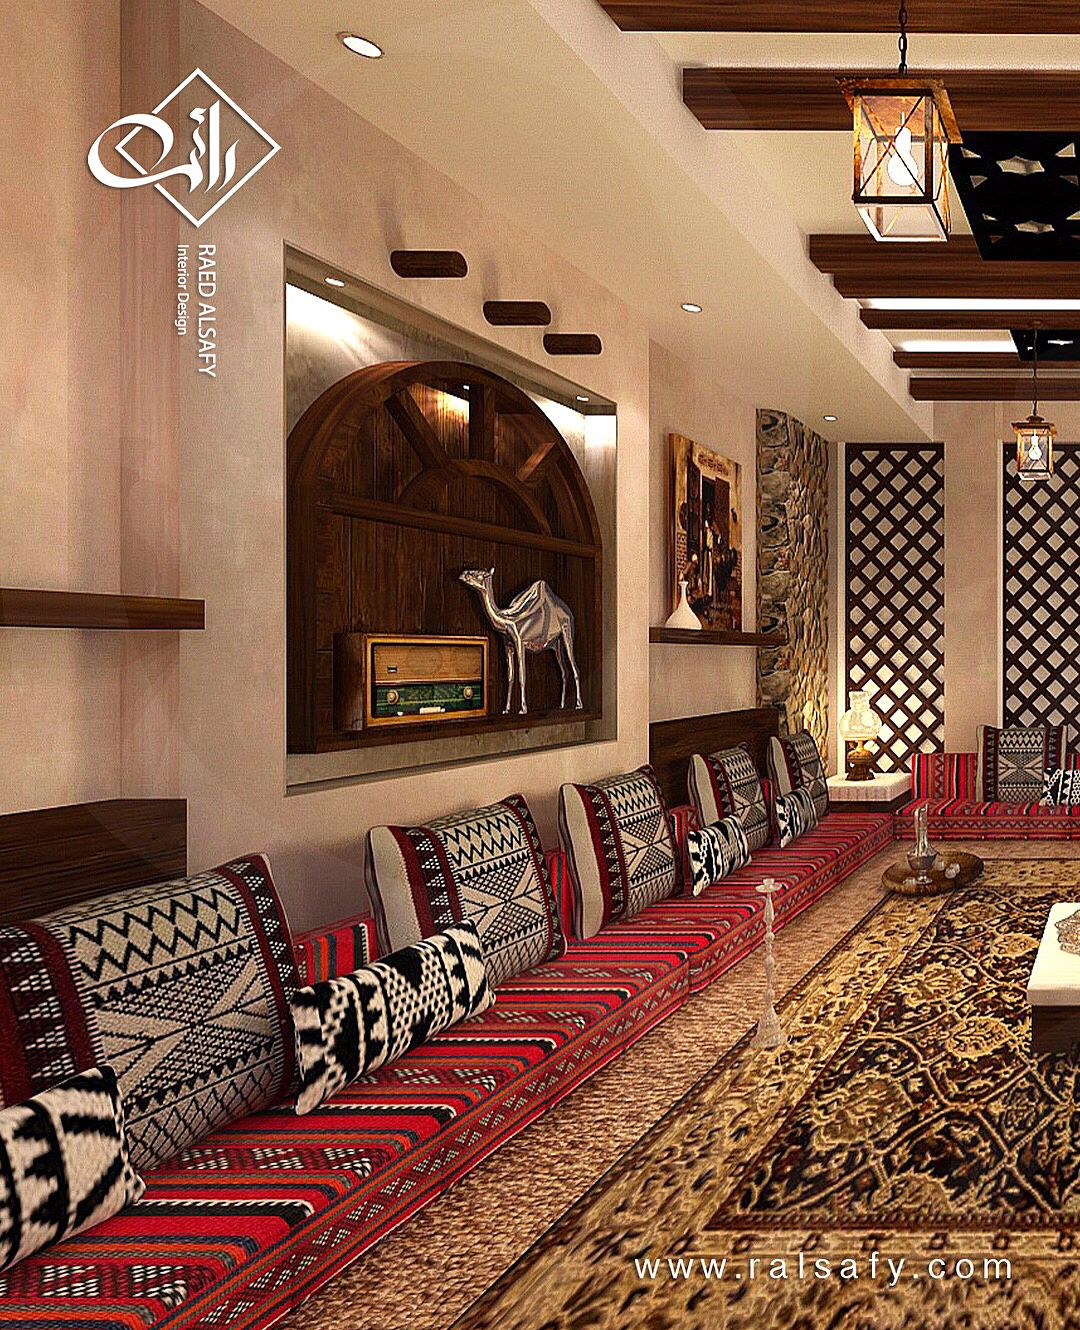 Pin By Waleed A On ديكور Modern Foyer Interior Design Design